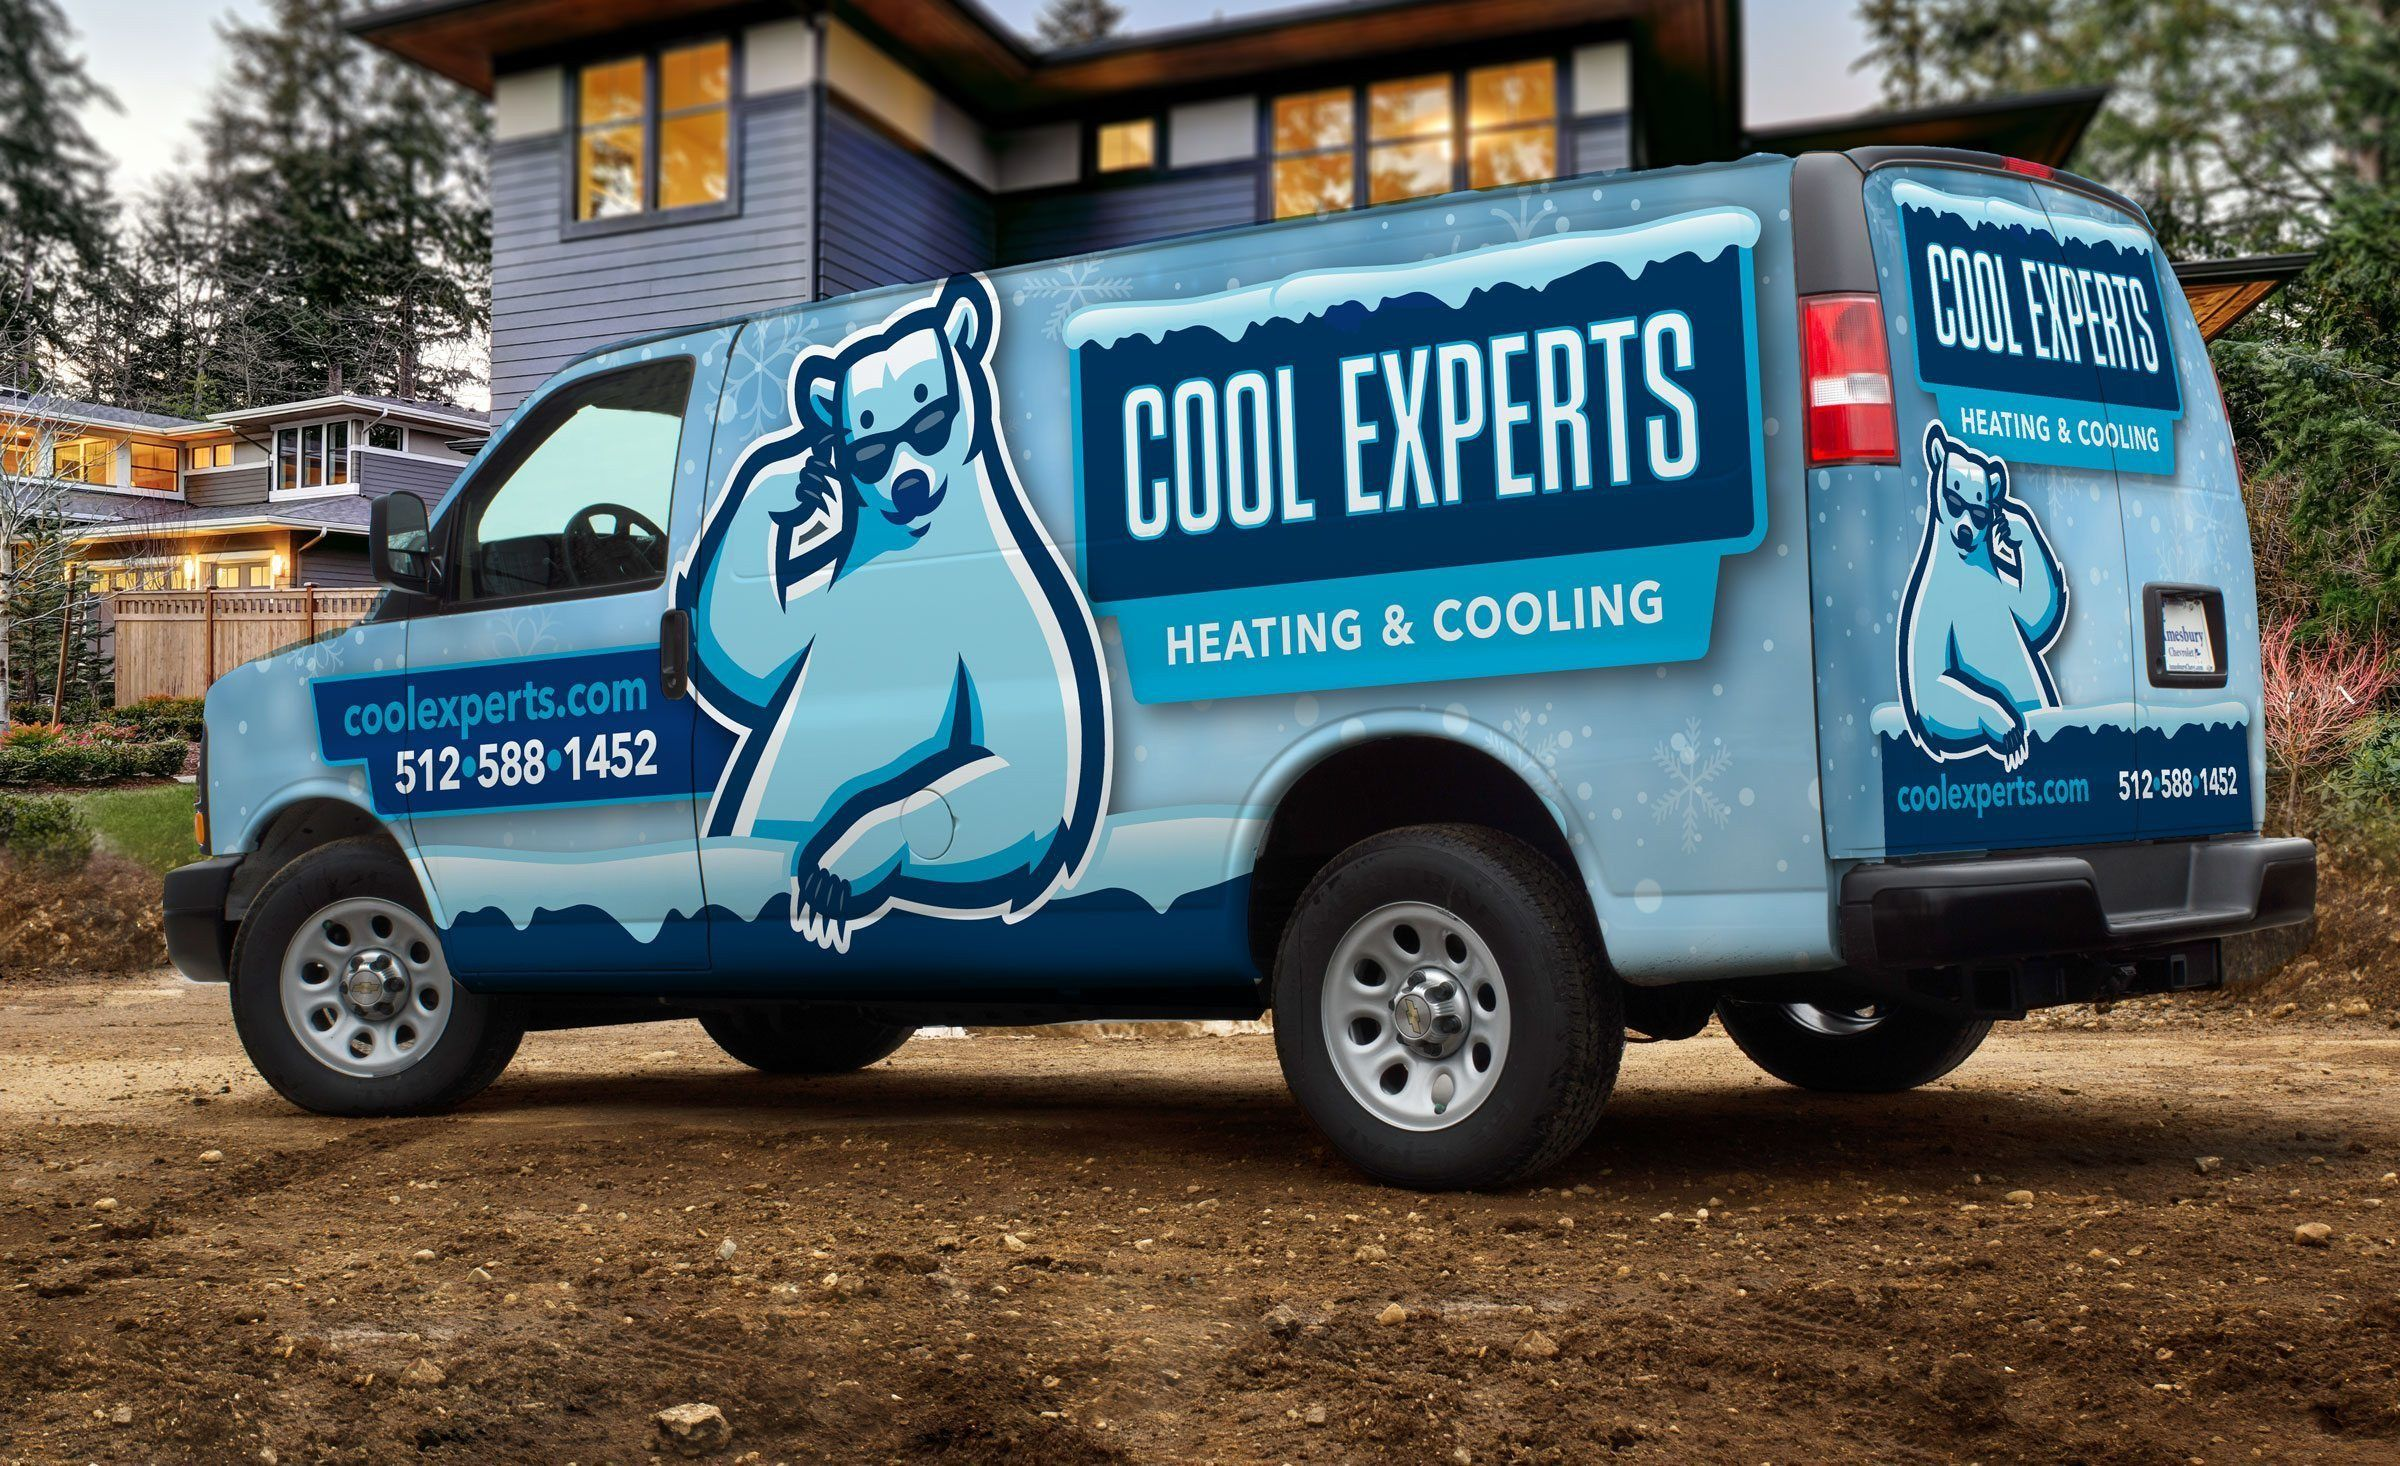 Vehicle Wrap Design For This Heating And Cooling Company Car